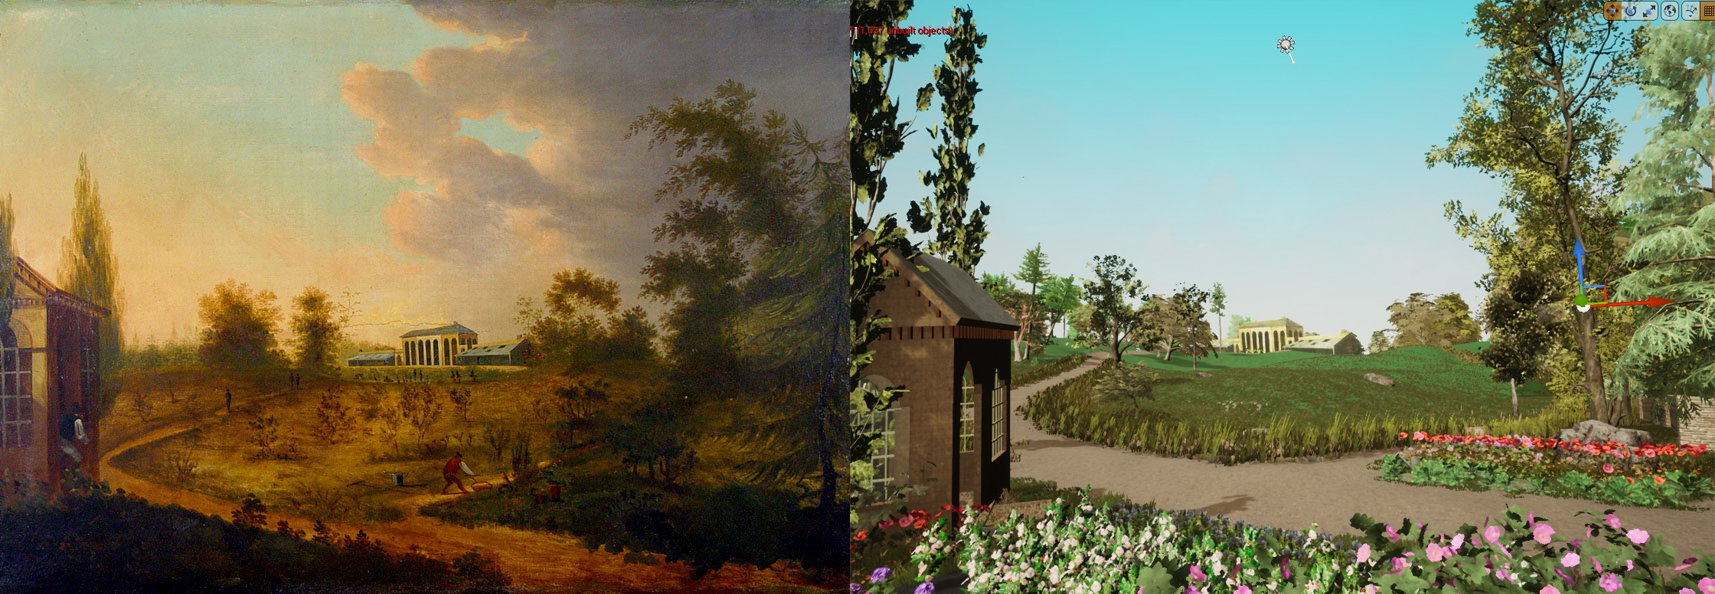 Painting of Elgin Garden (circa 1810) and test Unreal Engine rendering